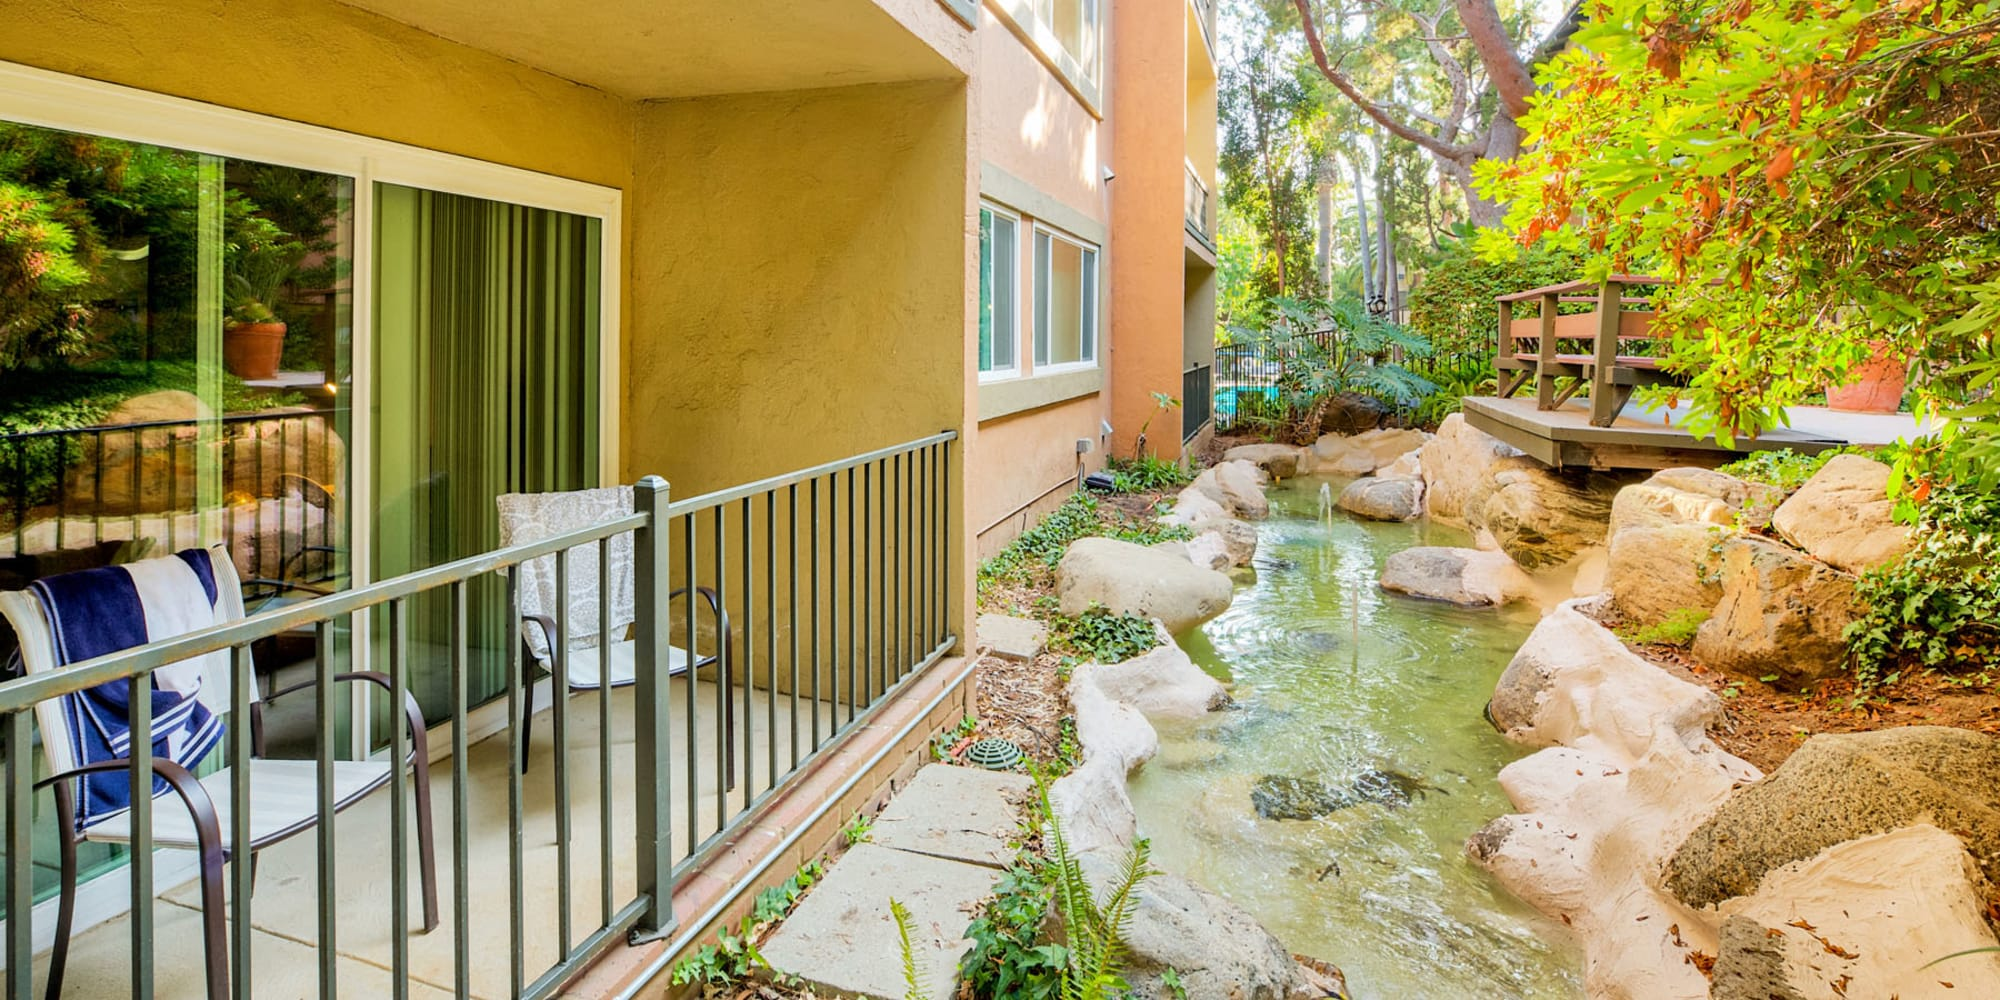 Private patio outside a resident apartment overlooking a water feature at Casa Granada in Los Angeles, California